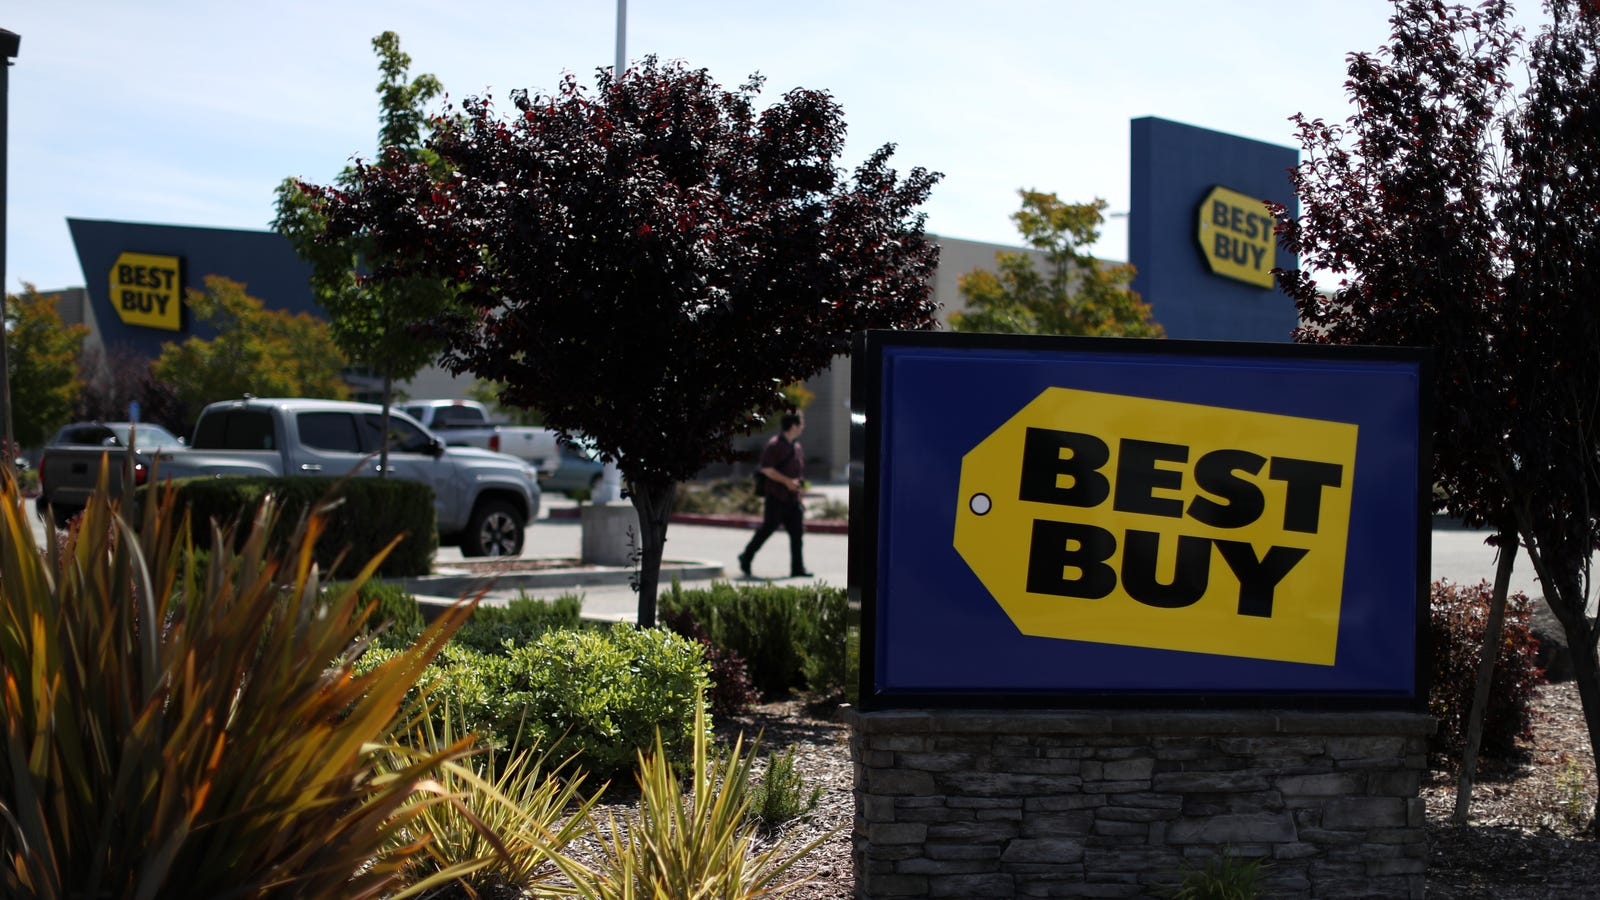 You Can Now Get Your Busted Apple Products Repaired at Best Buy